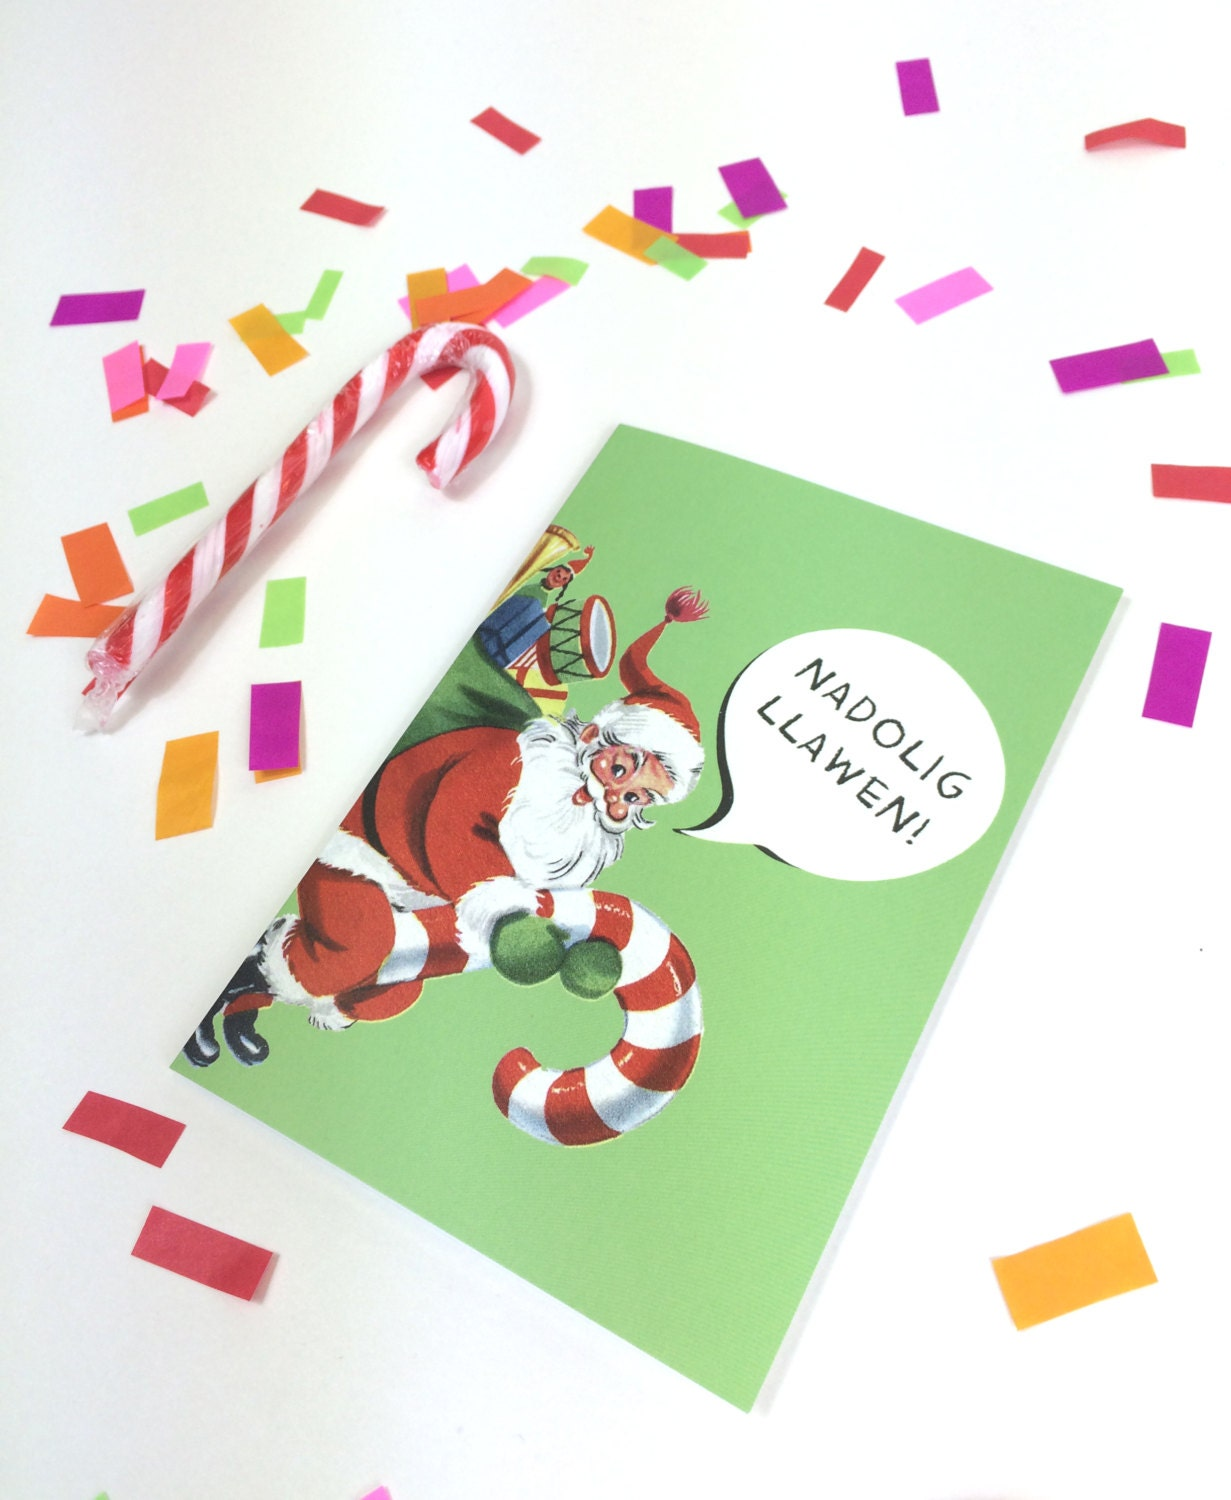 Nadolig llawen welsh text merry christmas retro bright green santa nadolig llawen welsh text merry christmas retro bright green santa father christmas eco friendly greeting card kristyandbryce Images